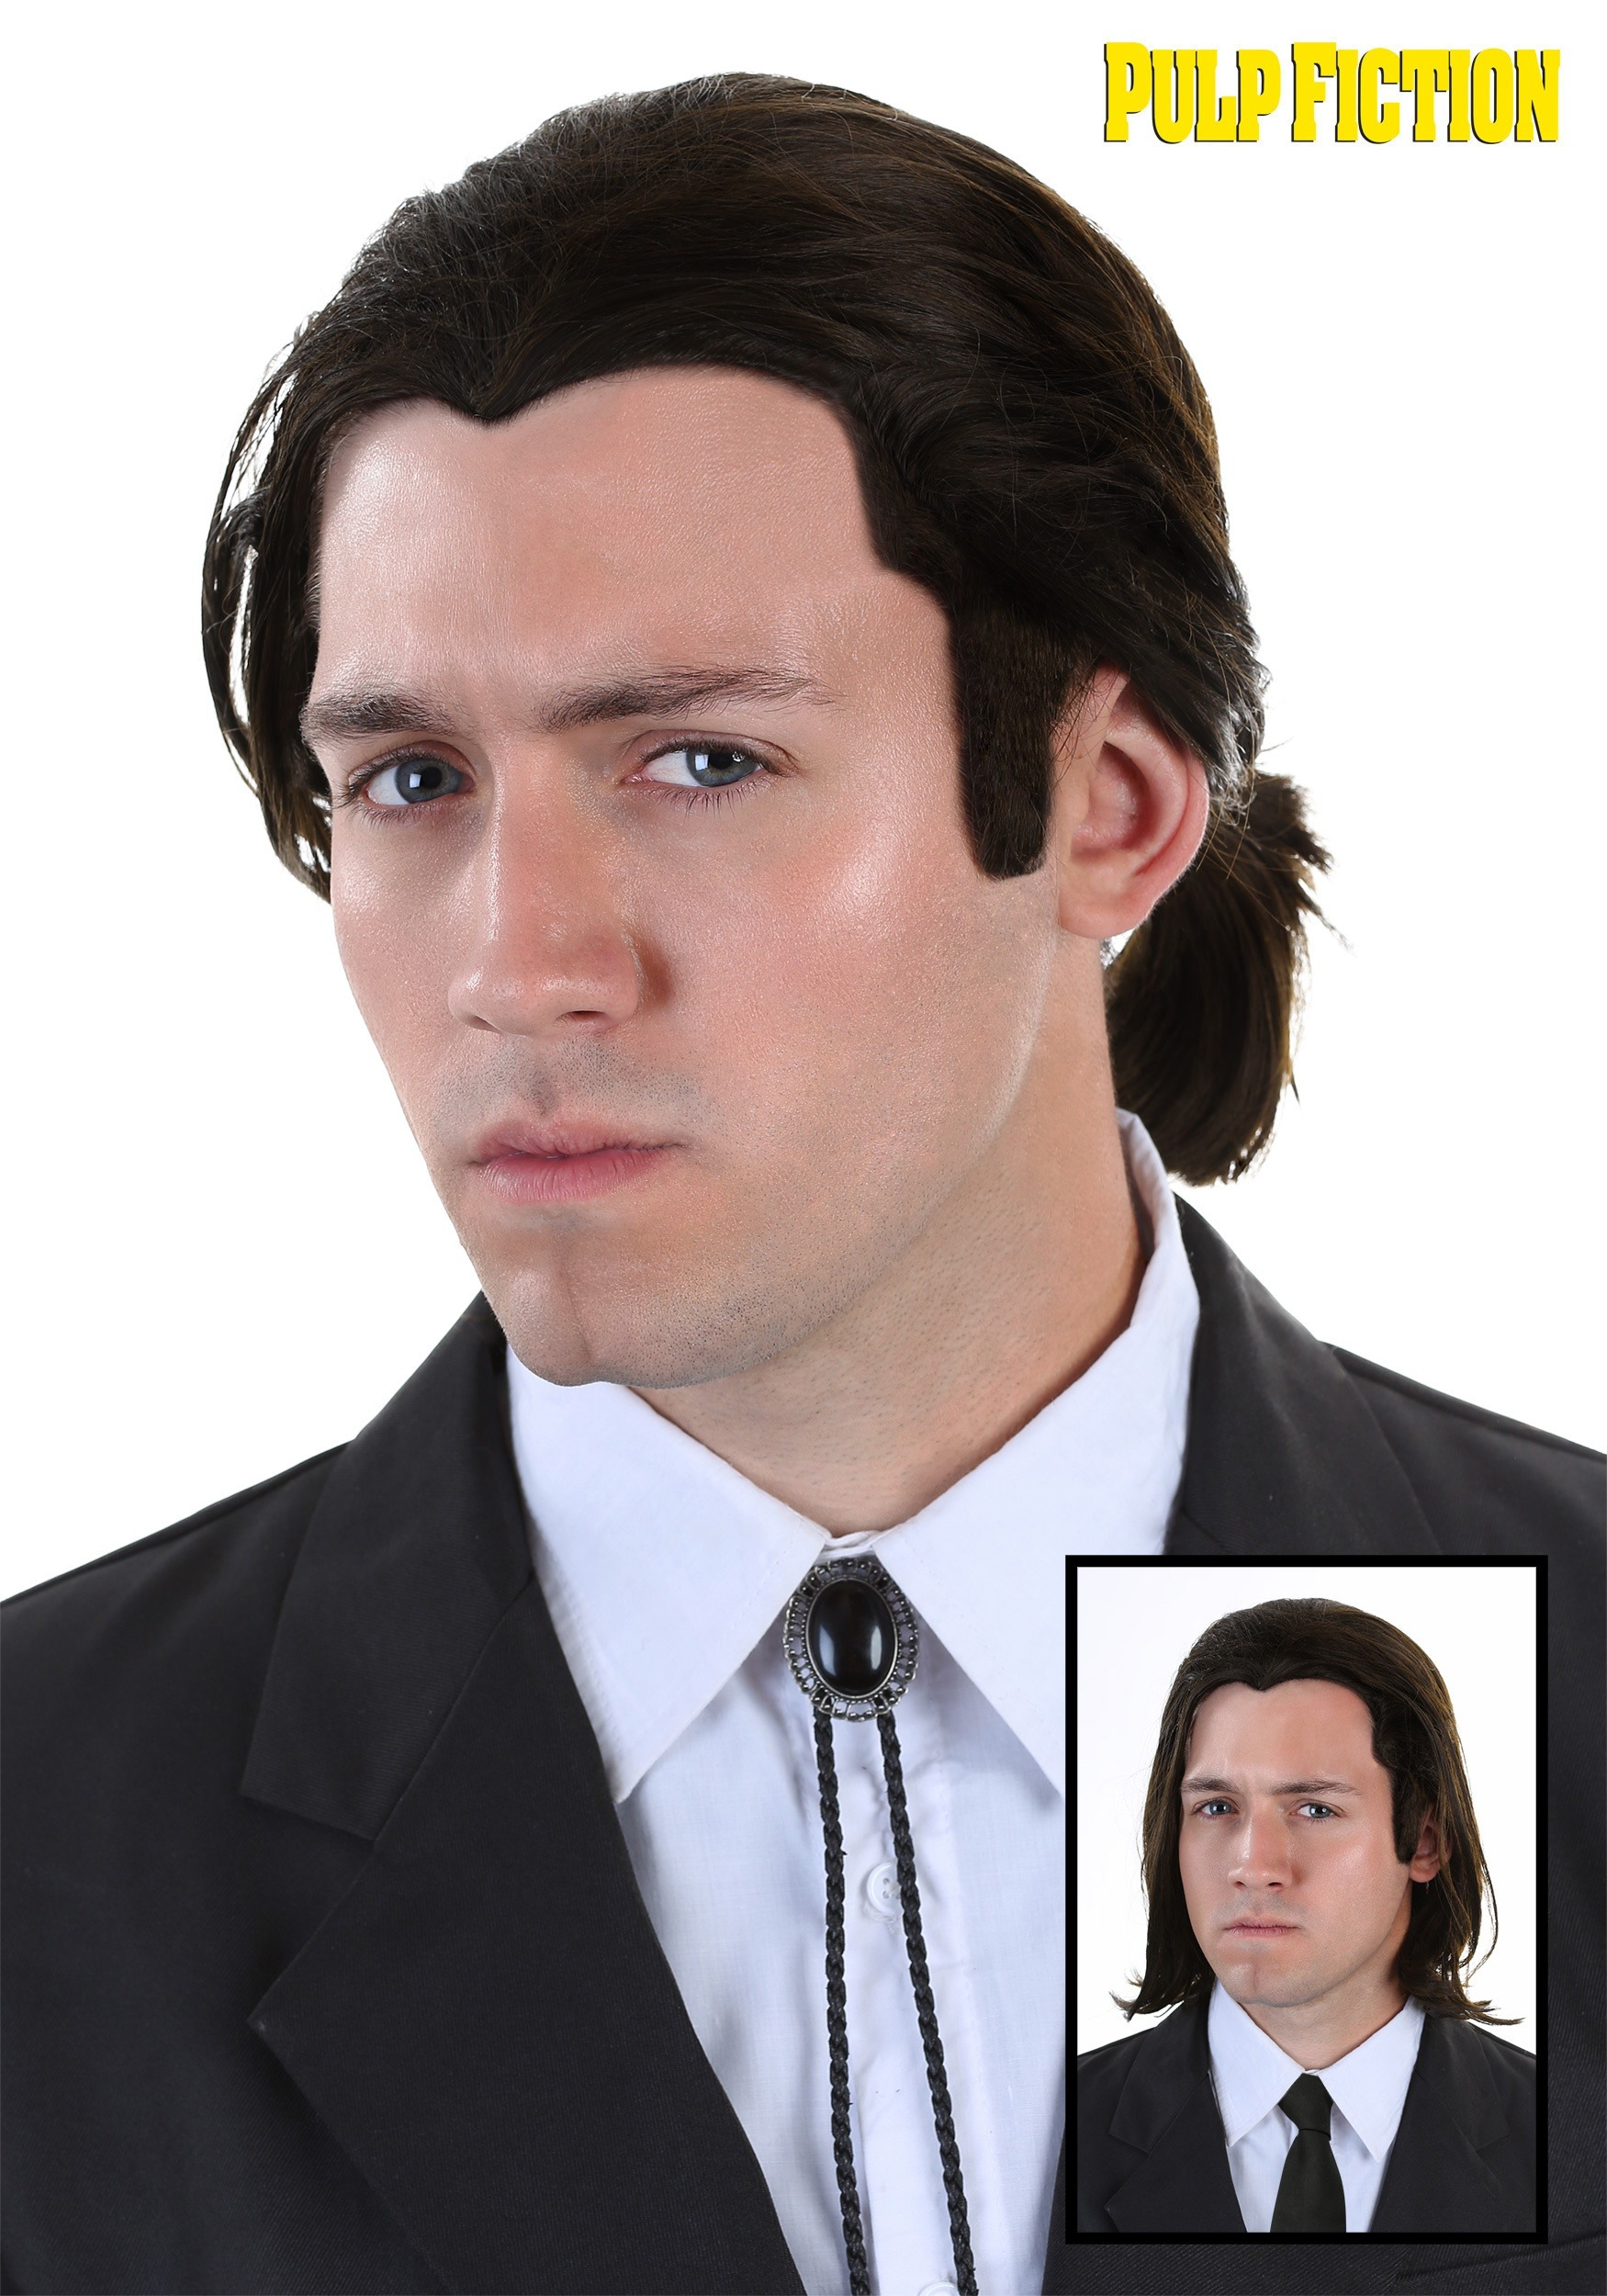 Pulp Fiction Costumes